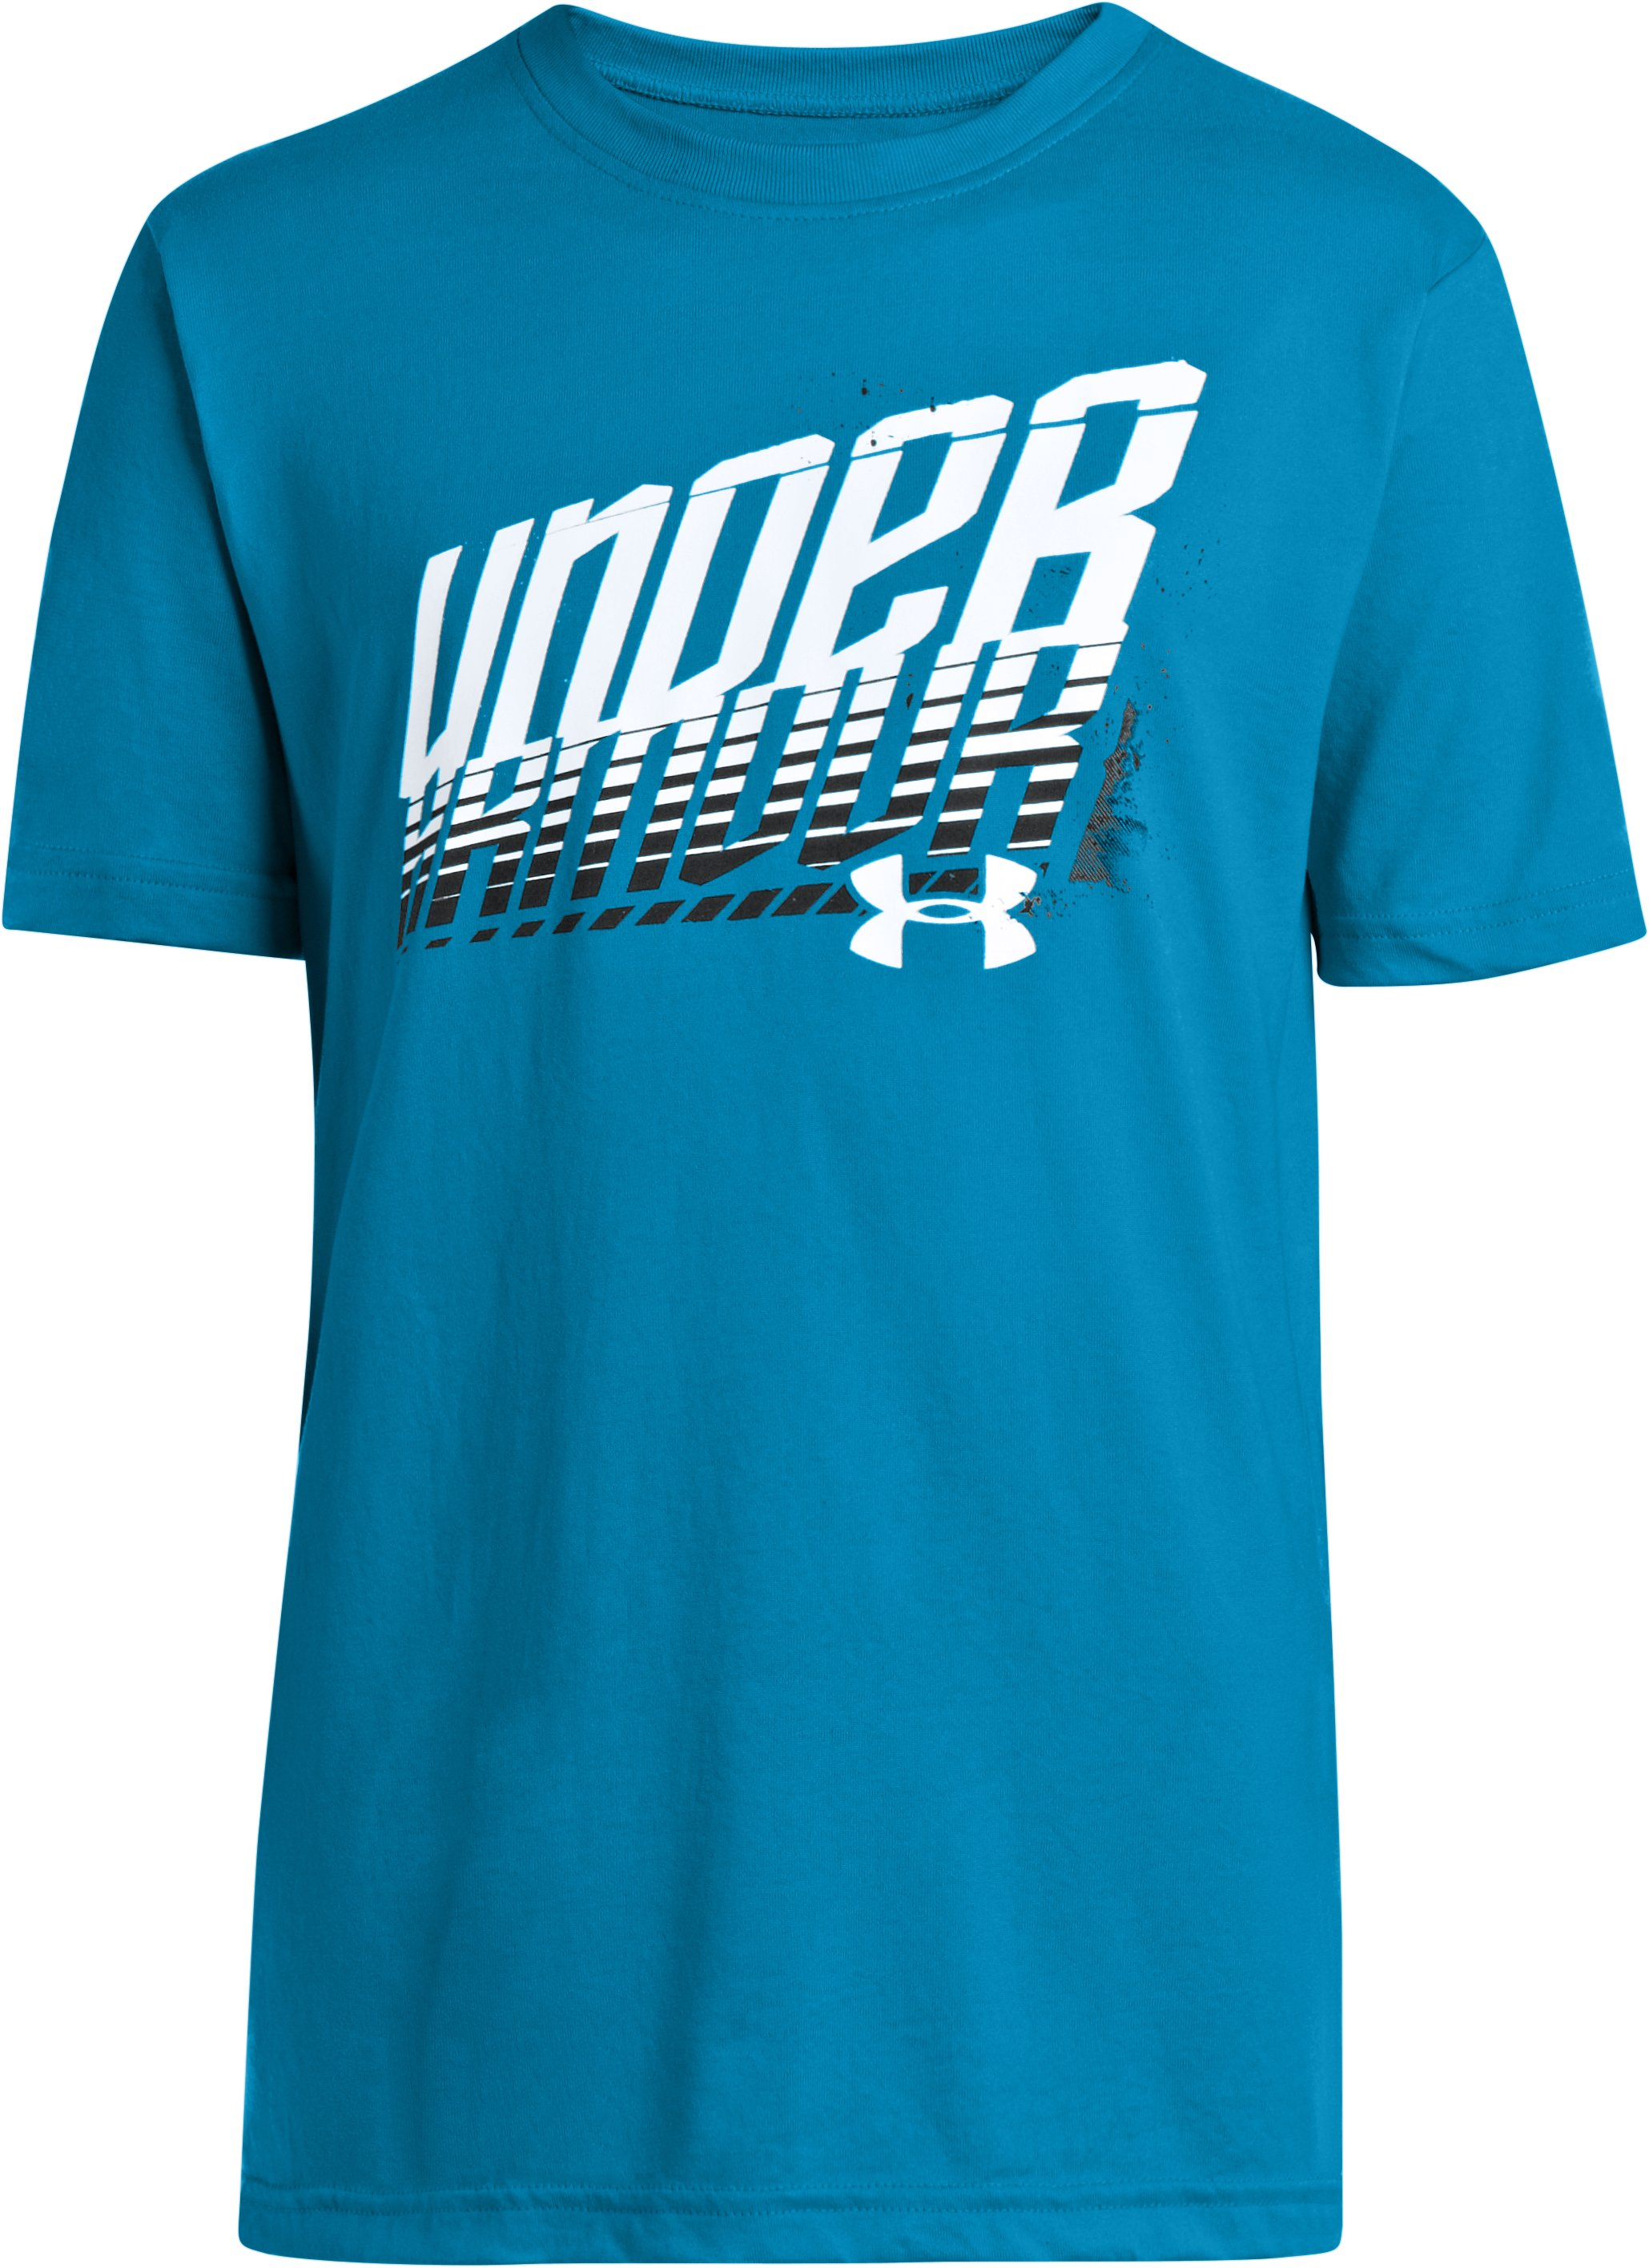 Boys' UA Future Fast T-Shirt, PIRATE BLUE